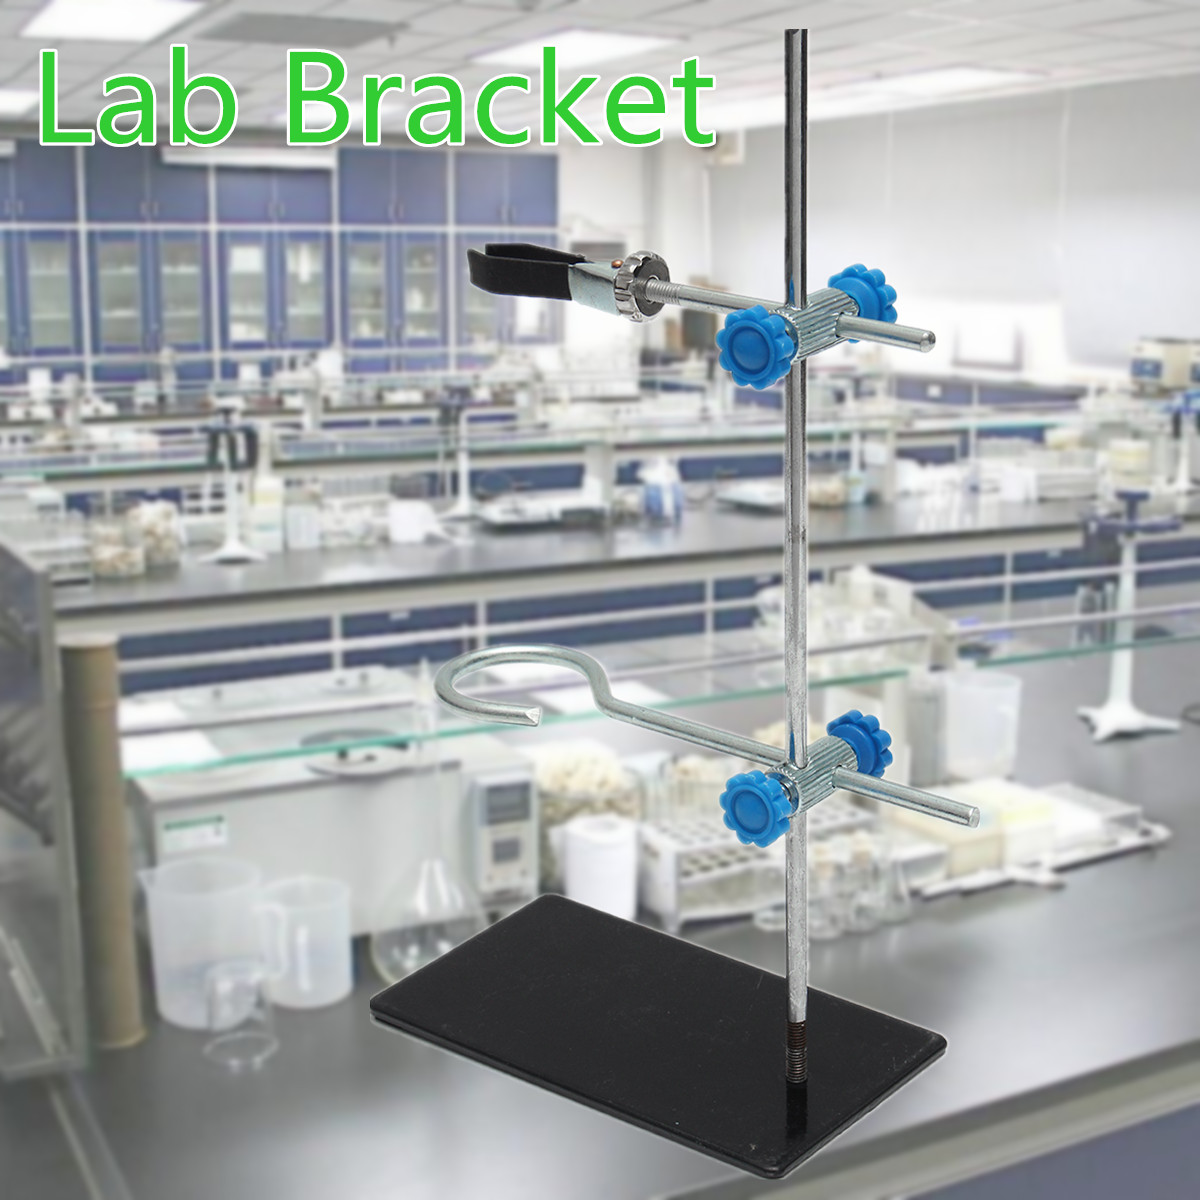 1pc 30cm High Retort StandIron Stand With Clamp Clip Lab Ring Stand Equipment 15x8.5cm School Laboratory Education Supplies1pc 30cm High Retort StandIron Stand With Clamp Clip Lab Ring Stand Equipment 15x8.5cm School Laboratory Education Supplies